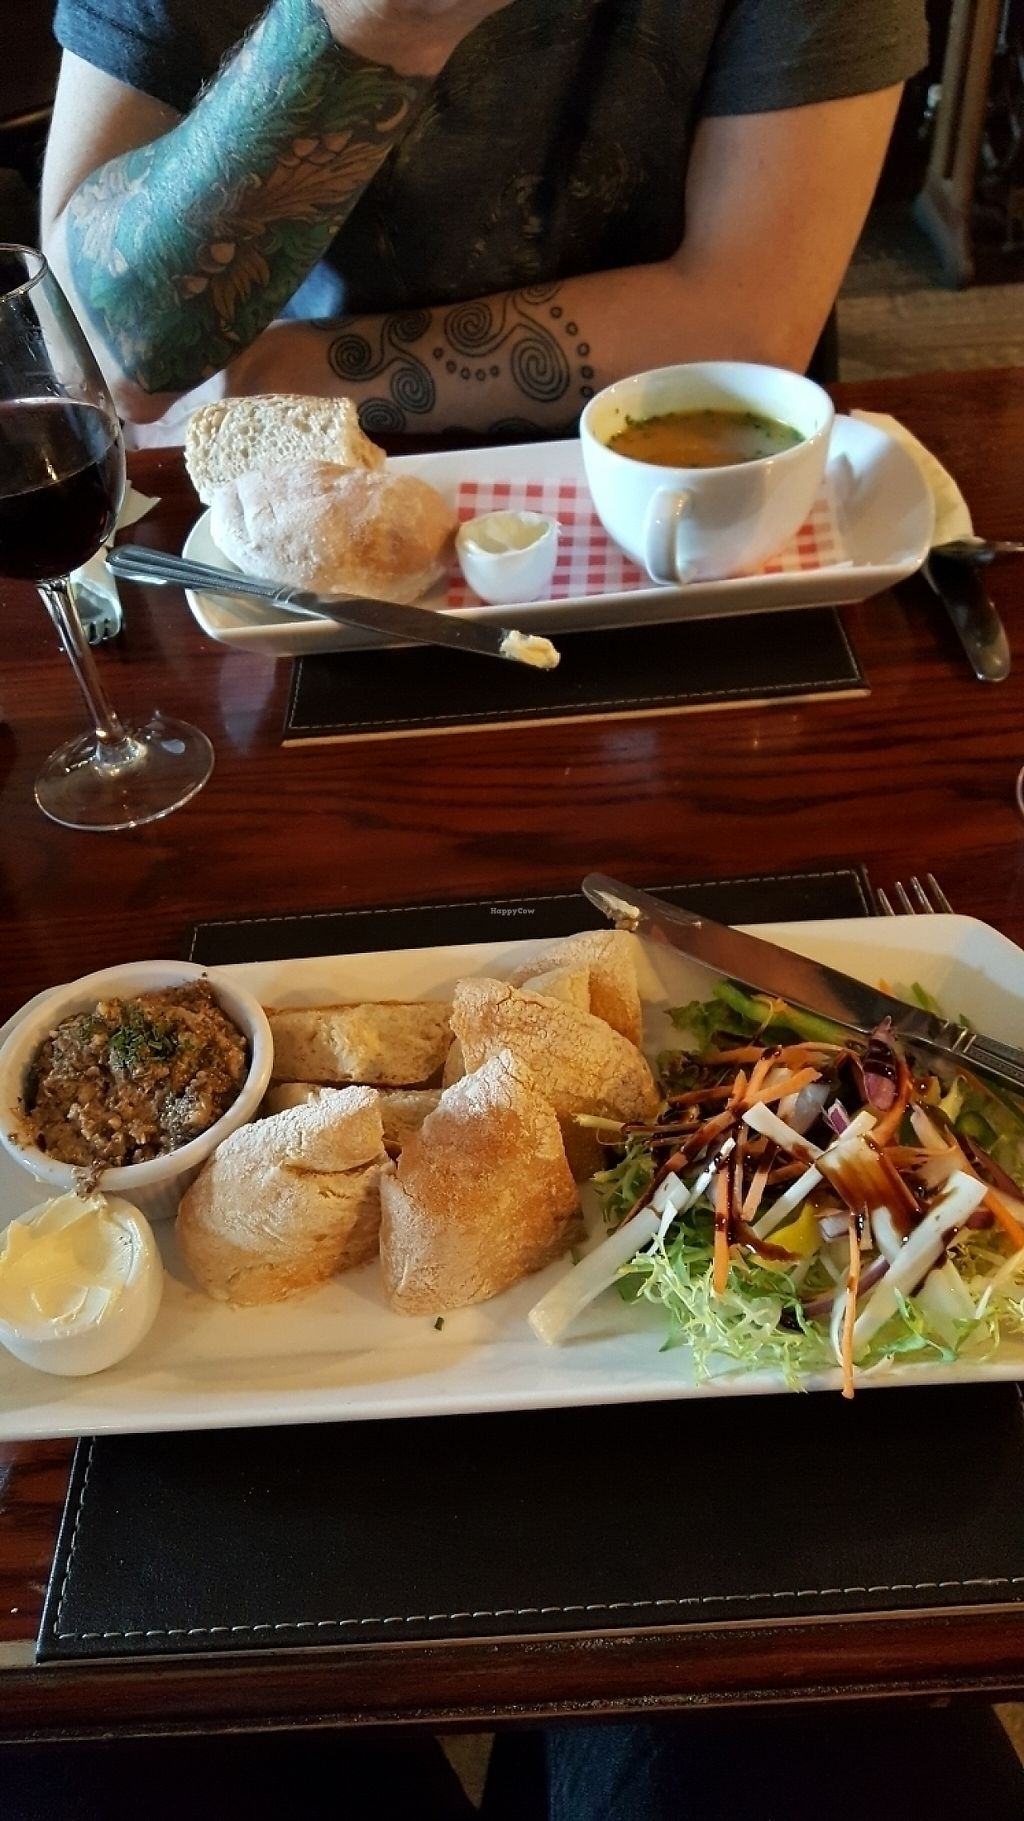 """Photo of The Castle Inn   by <a href=""""/members/profile/jansky7"""">jansky7</a> <br/>walnut and mushroom pate and carrot and coriander soup <br/> May 13, 2017  - <a href='/contact/abuse/image/88054/258443'>Report</a>"""